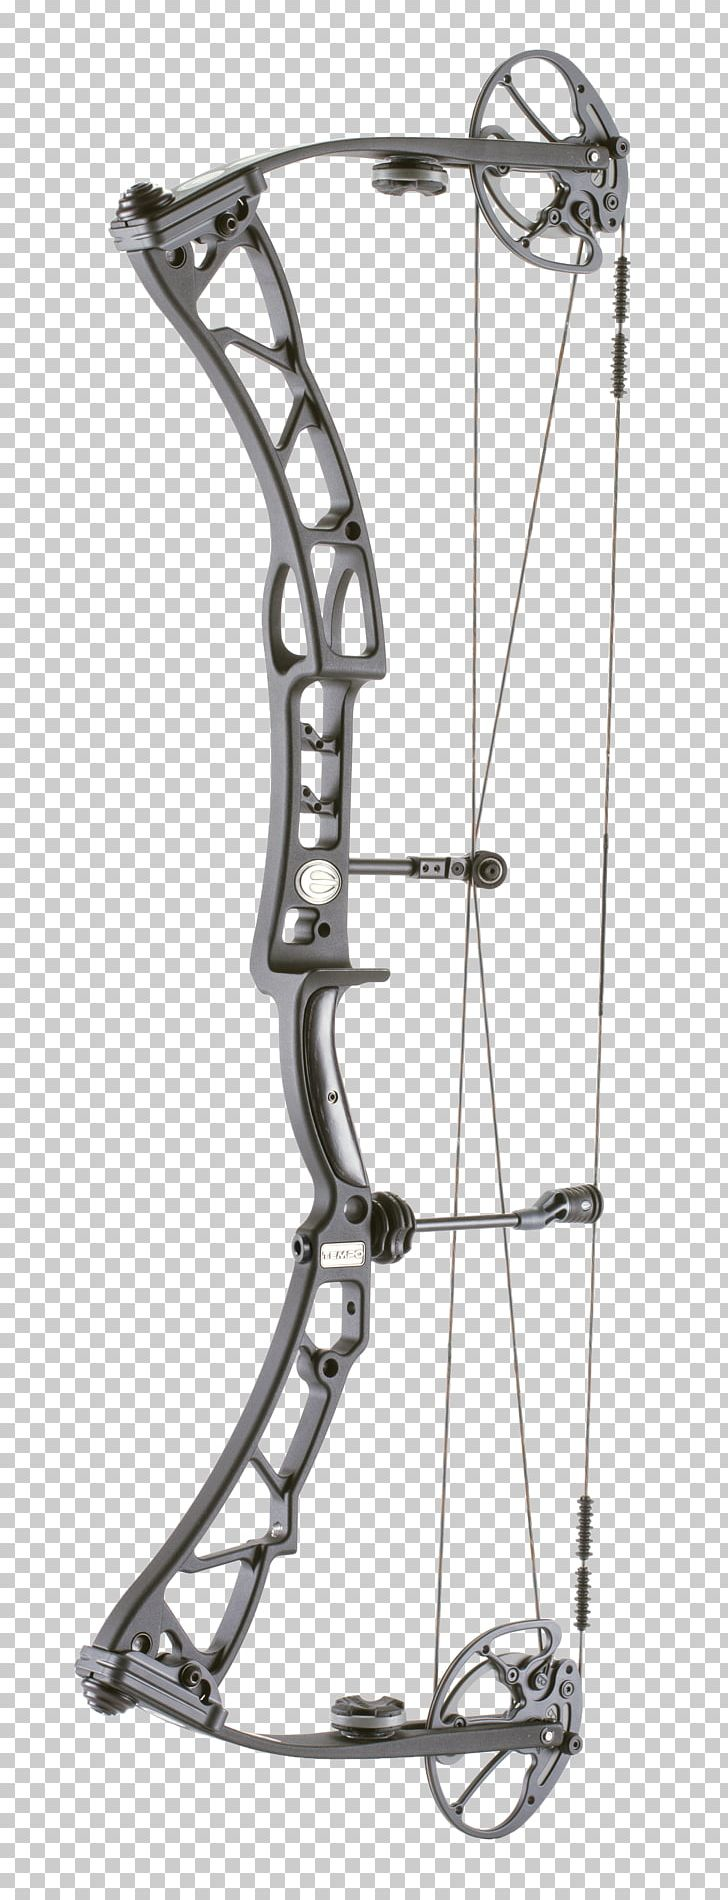 Compound Bows Target Archery Bow And Arrow Bowhunting PNG, Clipart, Archery, Arrow, Bow, Bow And Arrow, Bowhunting Free PNG Download